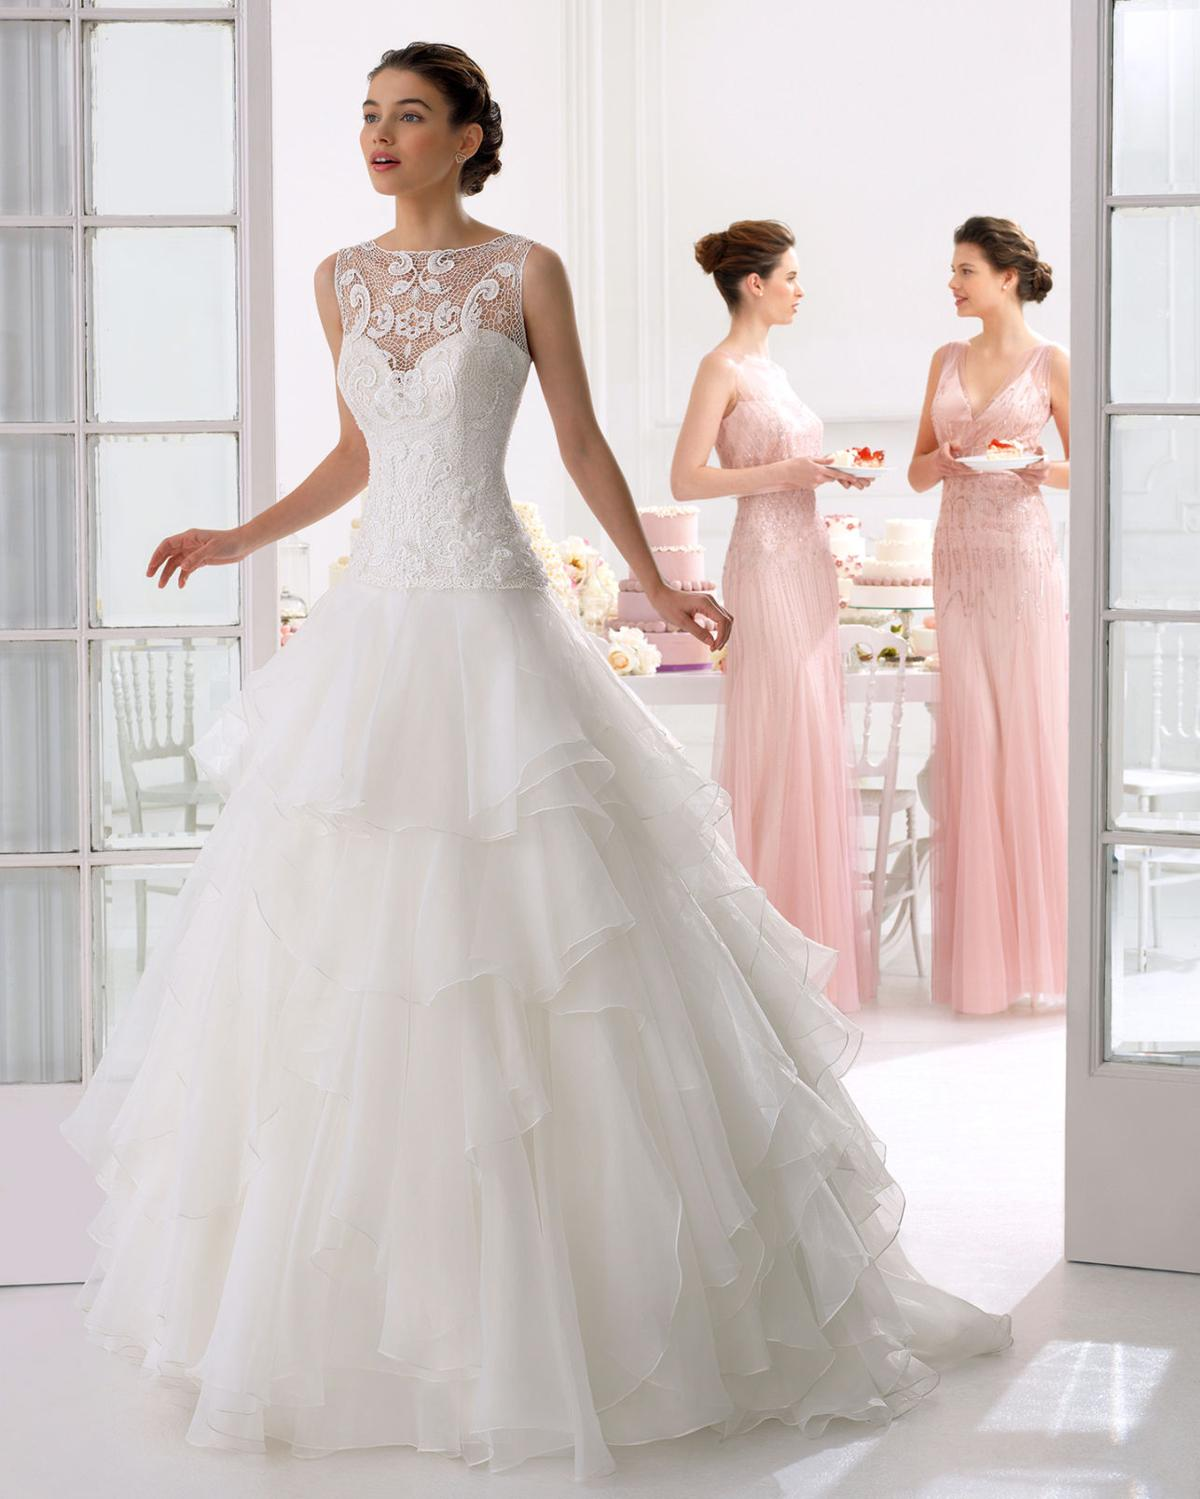 Keeping Cool: The Latest in Summer Wedding Gown Styles | Bliss ...